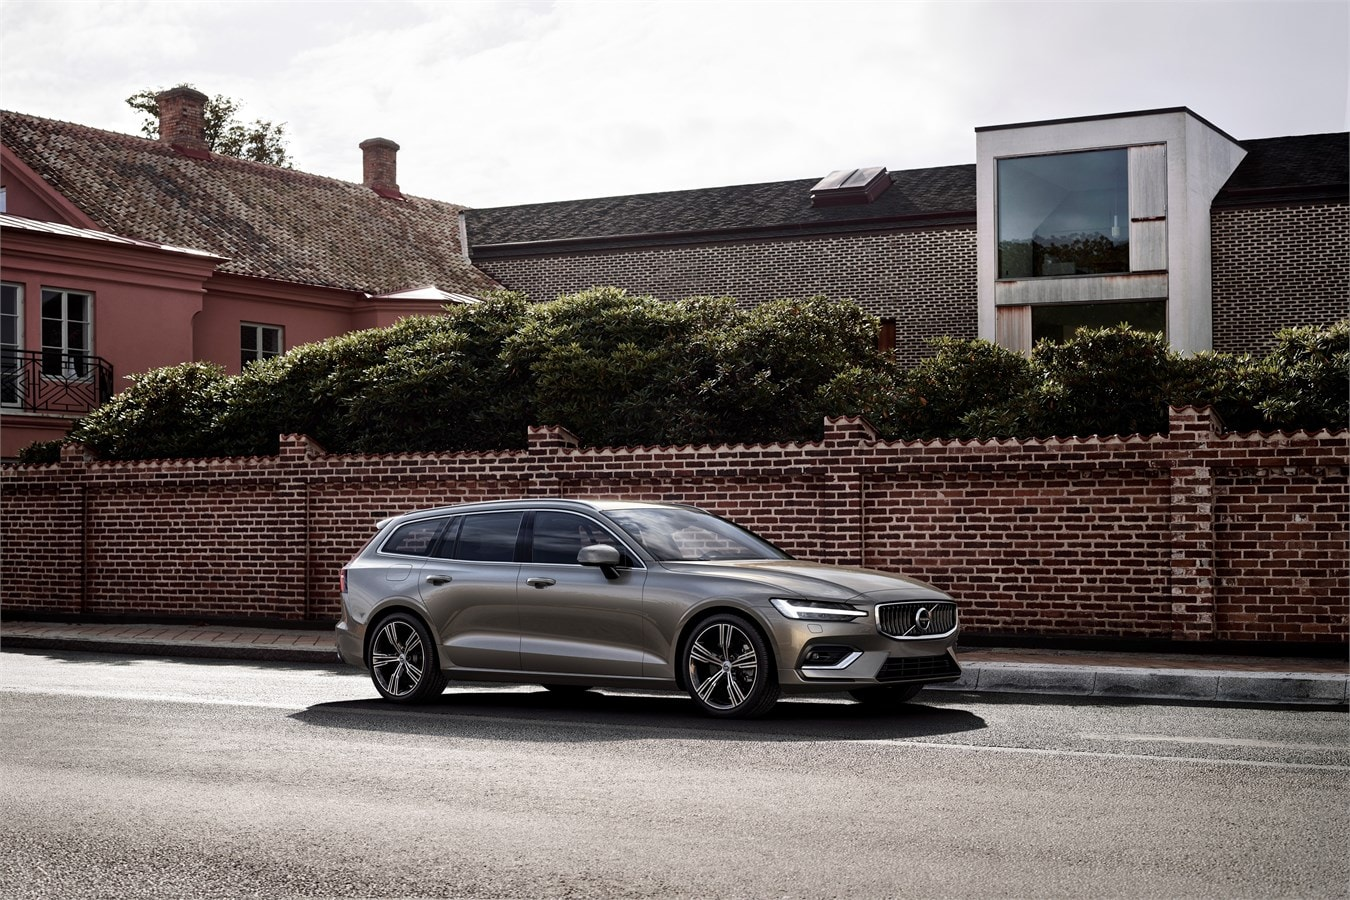 2019 Volvo V60 Bergen County NJ